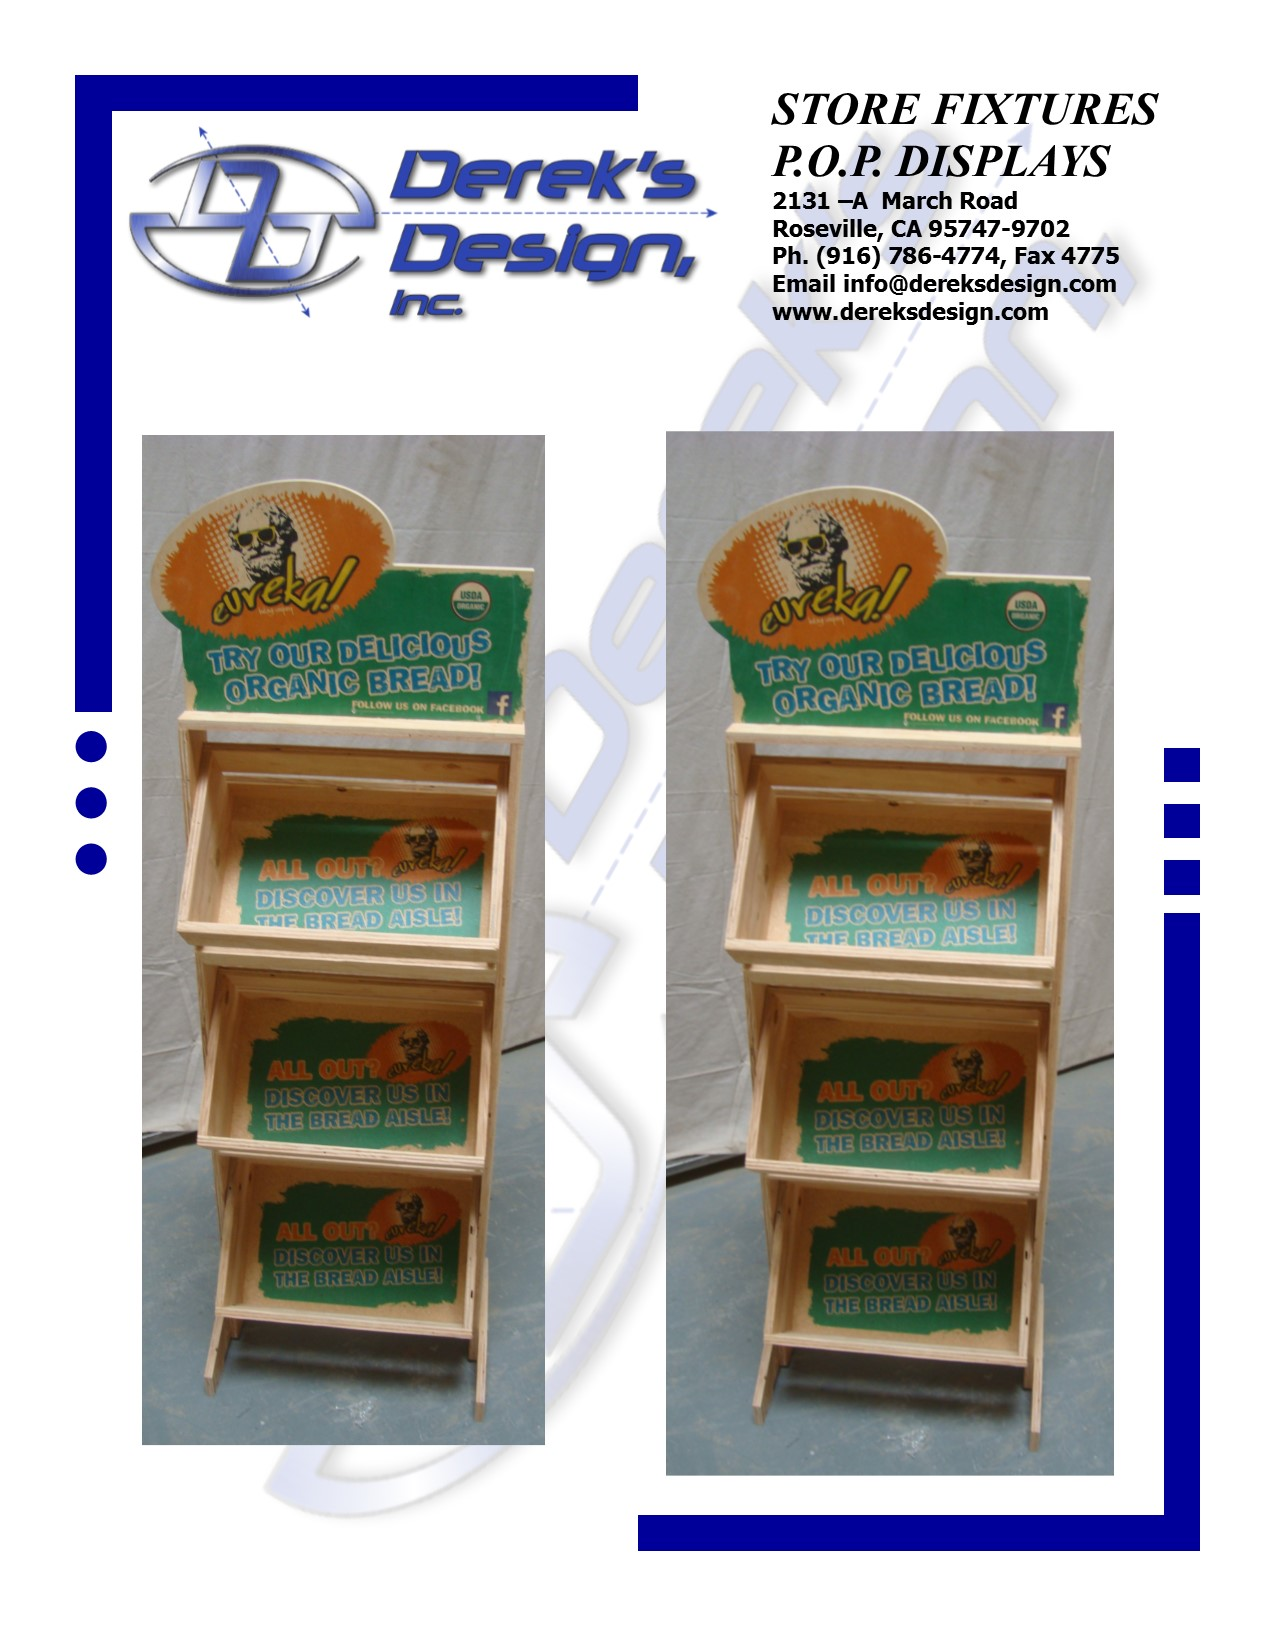 "<A HREF=""MAILTO:ORDERS@DEREKSDESIGN.COM?SUBJECT=Eureka%20Bread%20Displays&BODY=http://www.dereksdesign.com/gallery/custom-displays/eureka-bread-displaya/"">CLICK HERE FOR INQUIRY </A>"